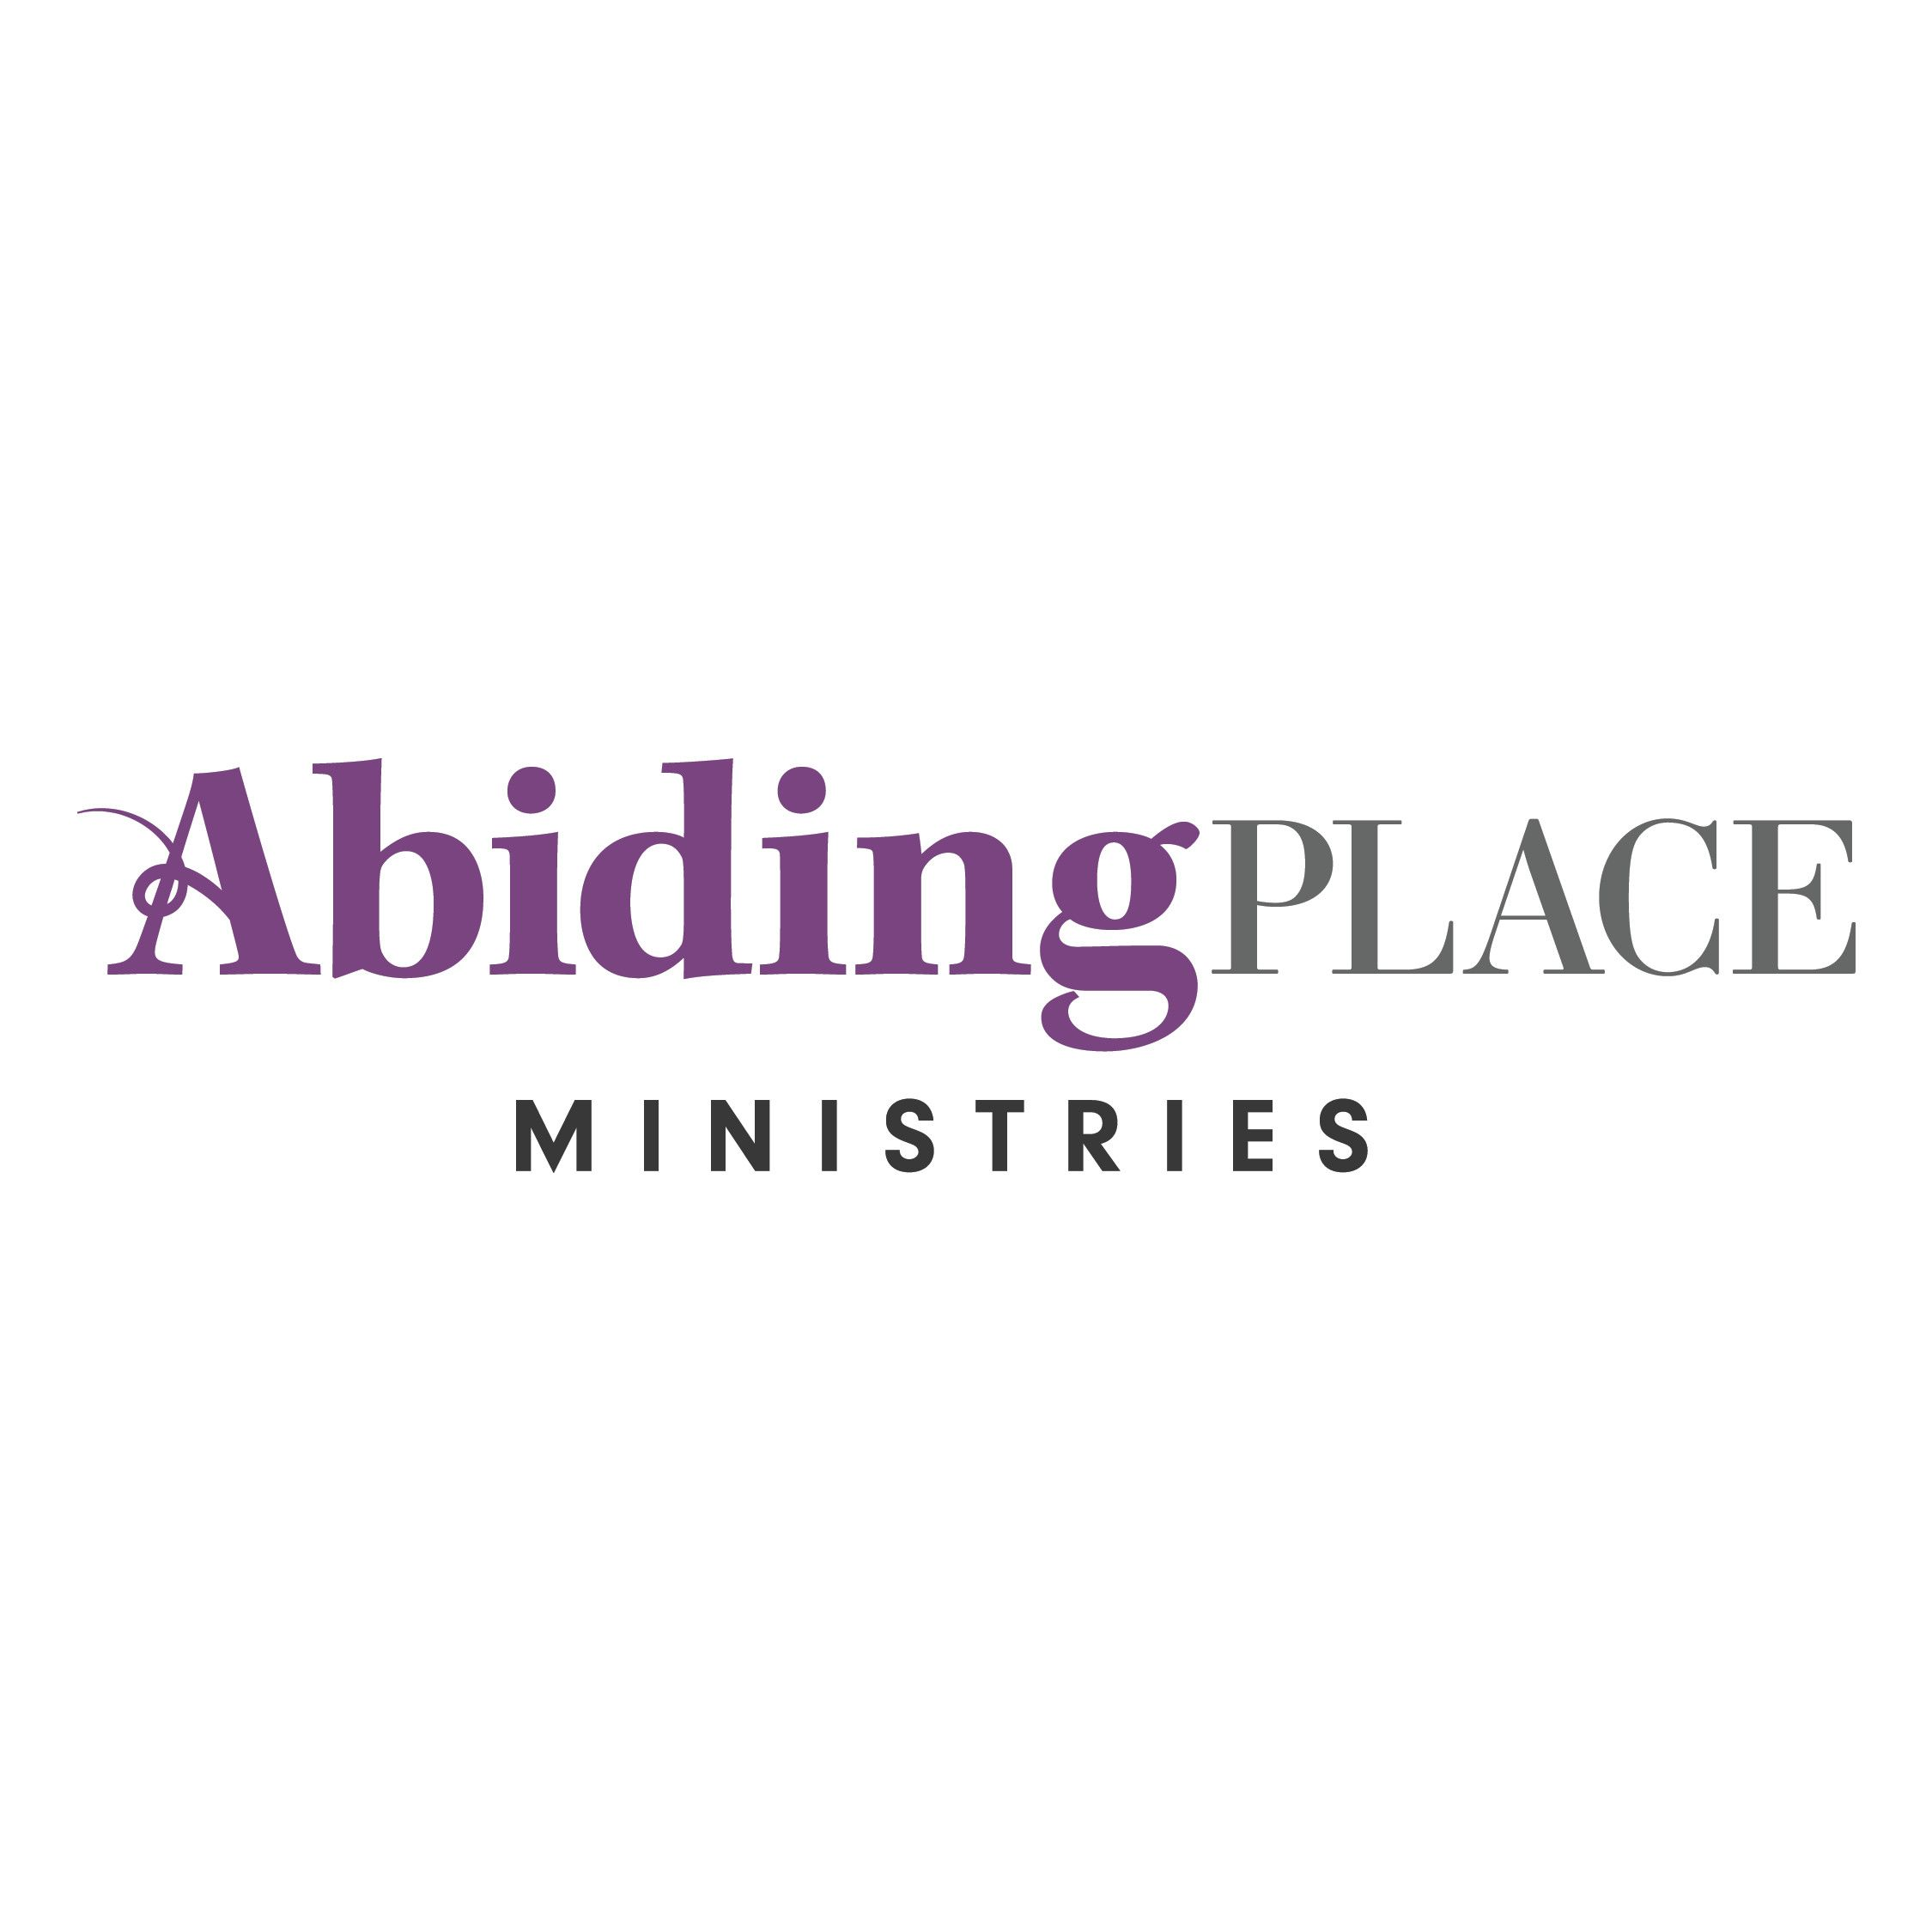 Abiding Place Ministry